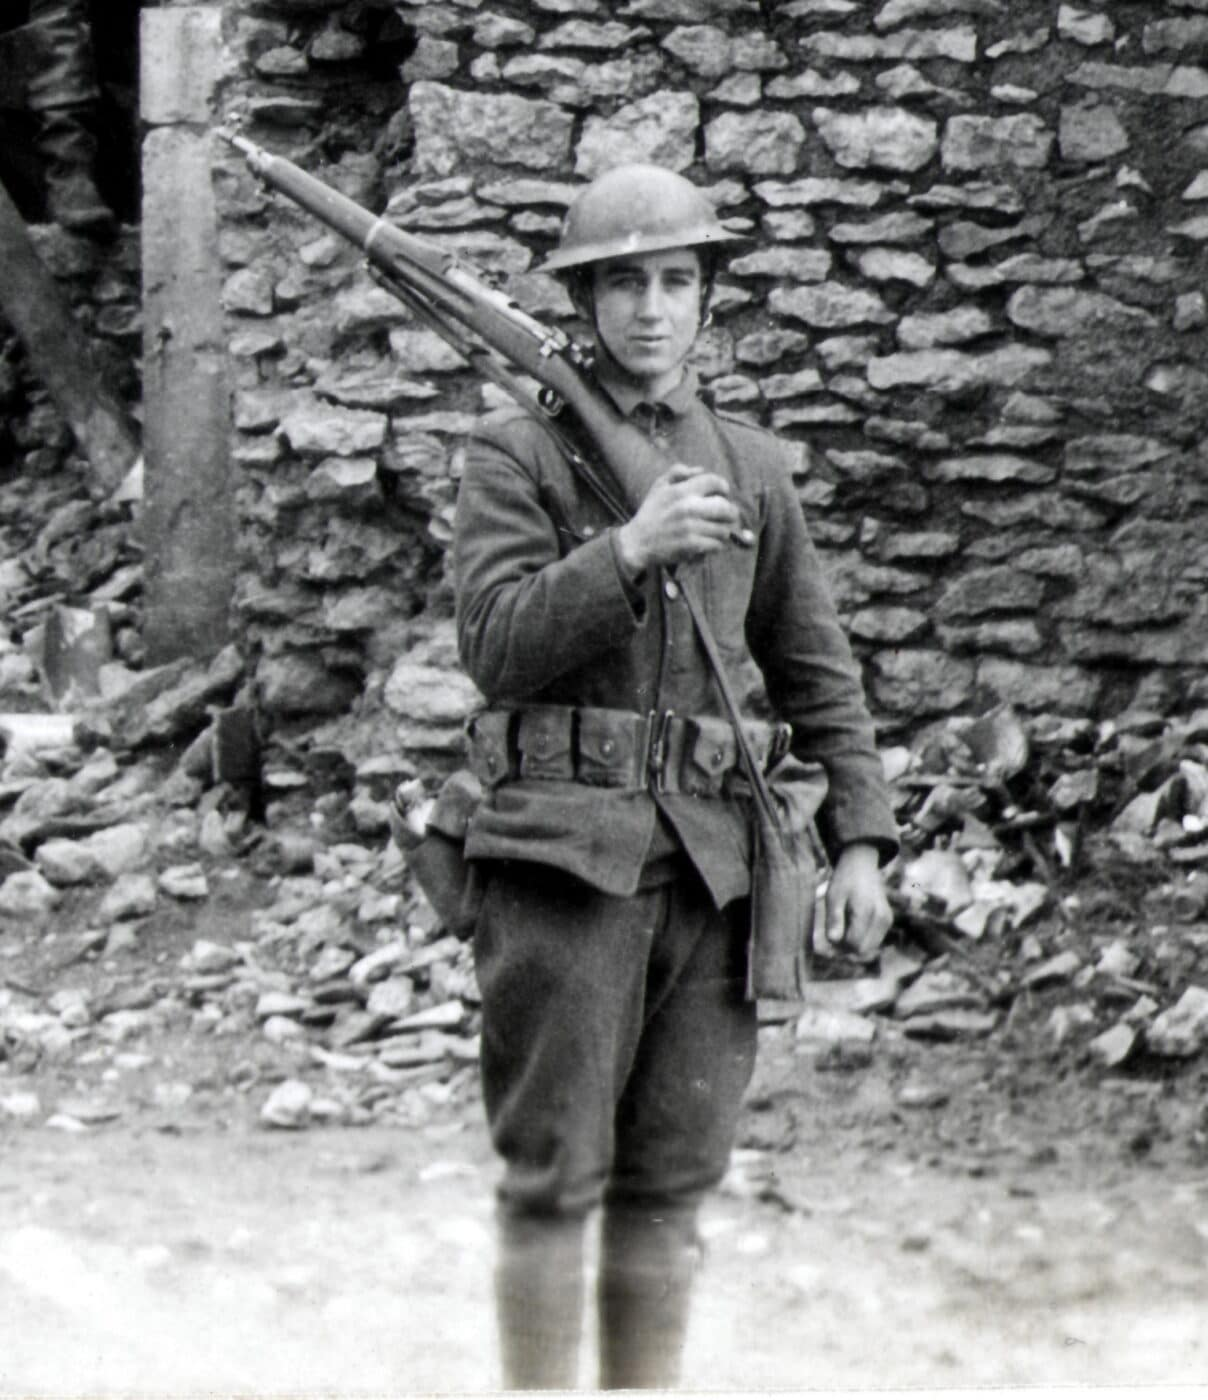 U.S. Army soldier carrying a 1903 Springfield Rifle during WWI